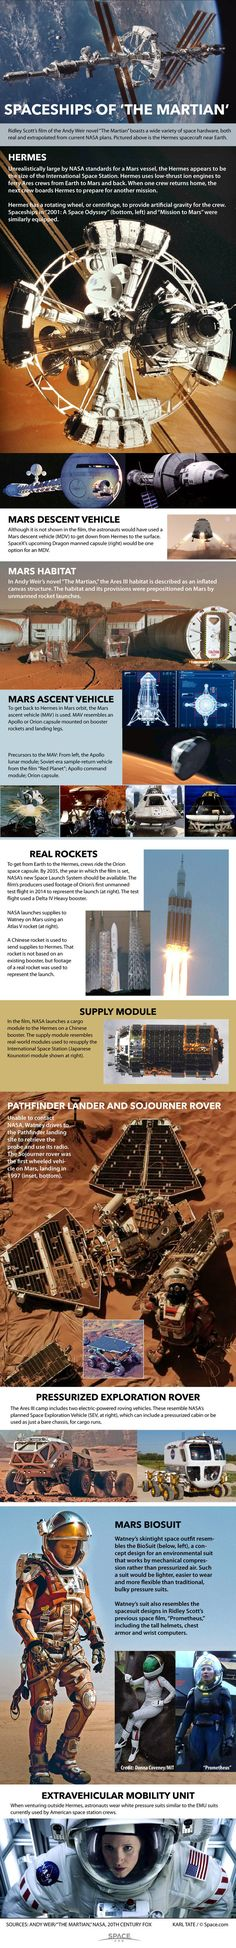 Spaceships of 'The Martian' Explained (Infographic)